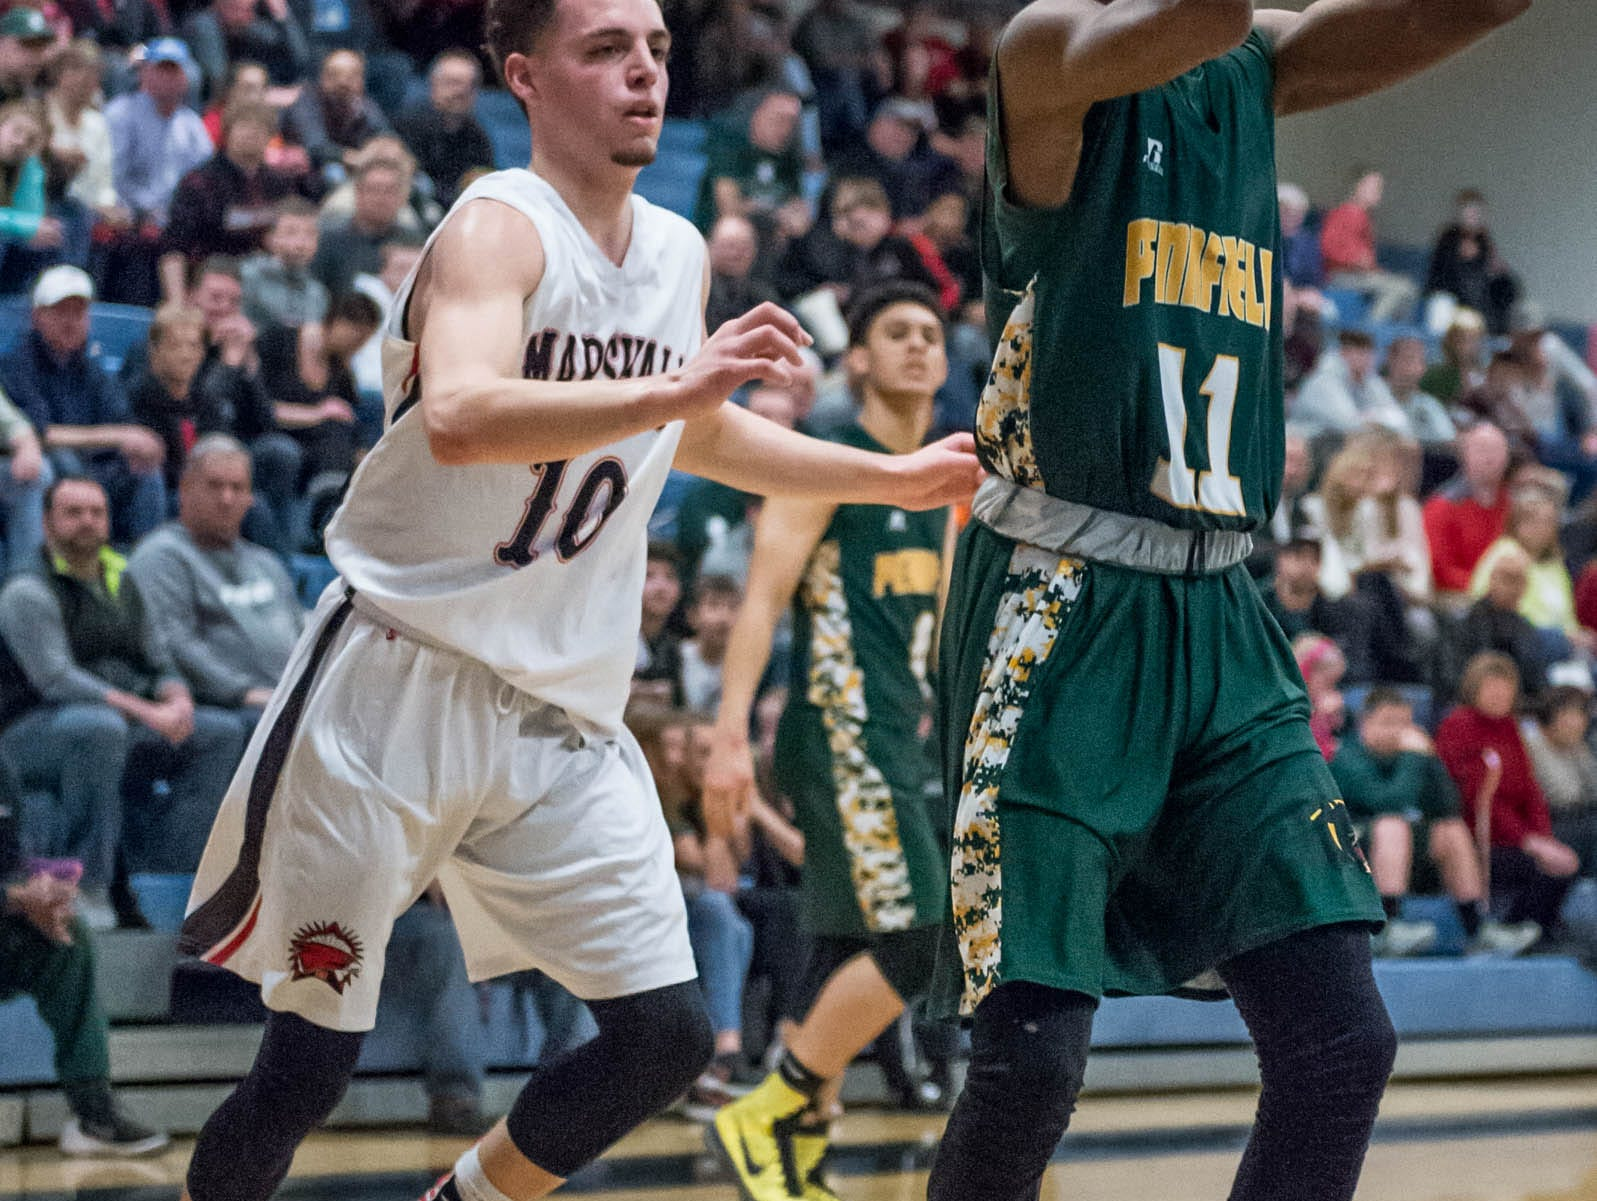 Pennfield's Francois Jamierson (11) goes for the basket during Monday's district game.